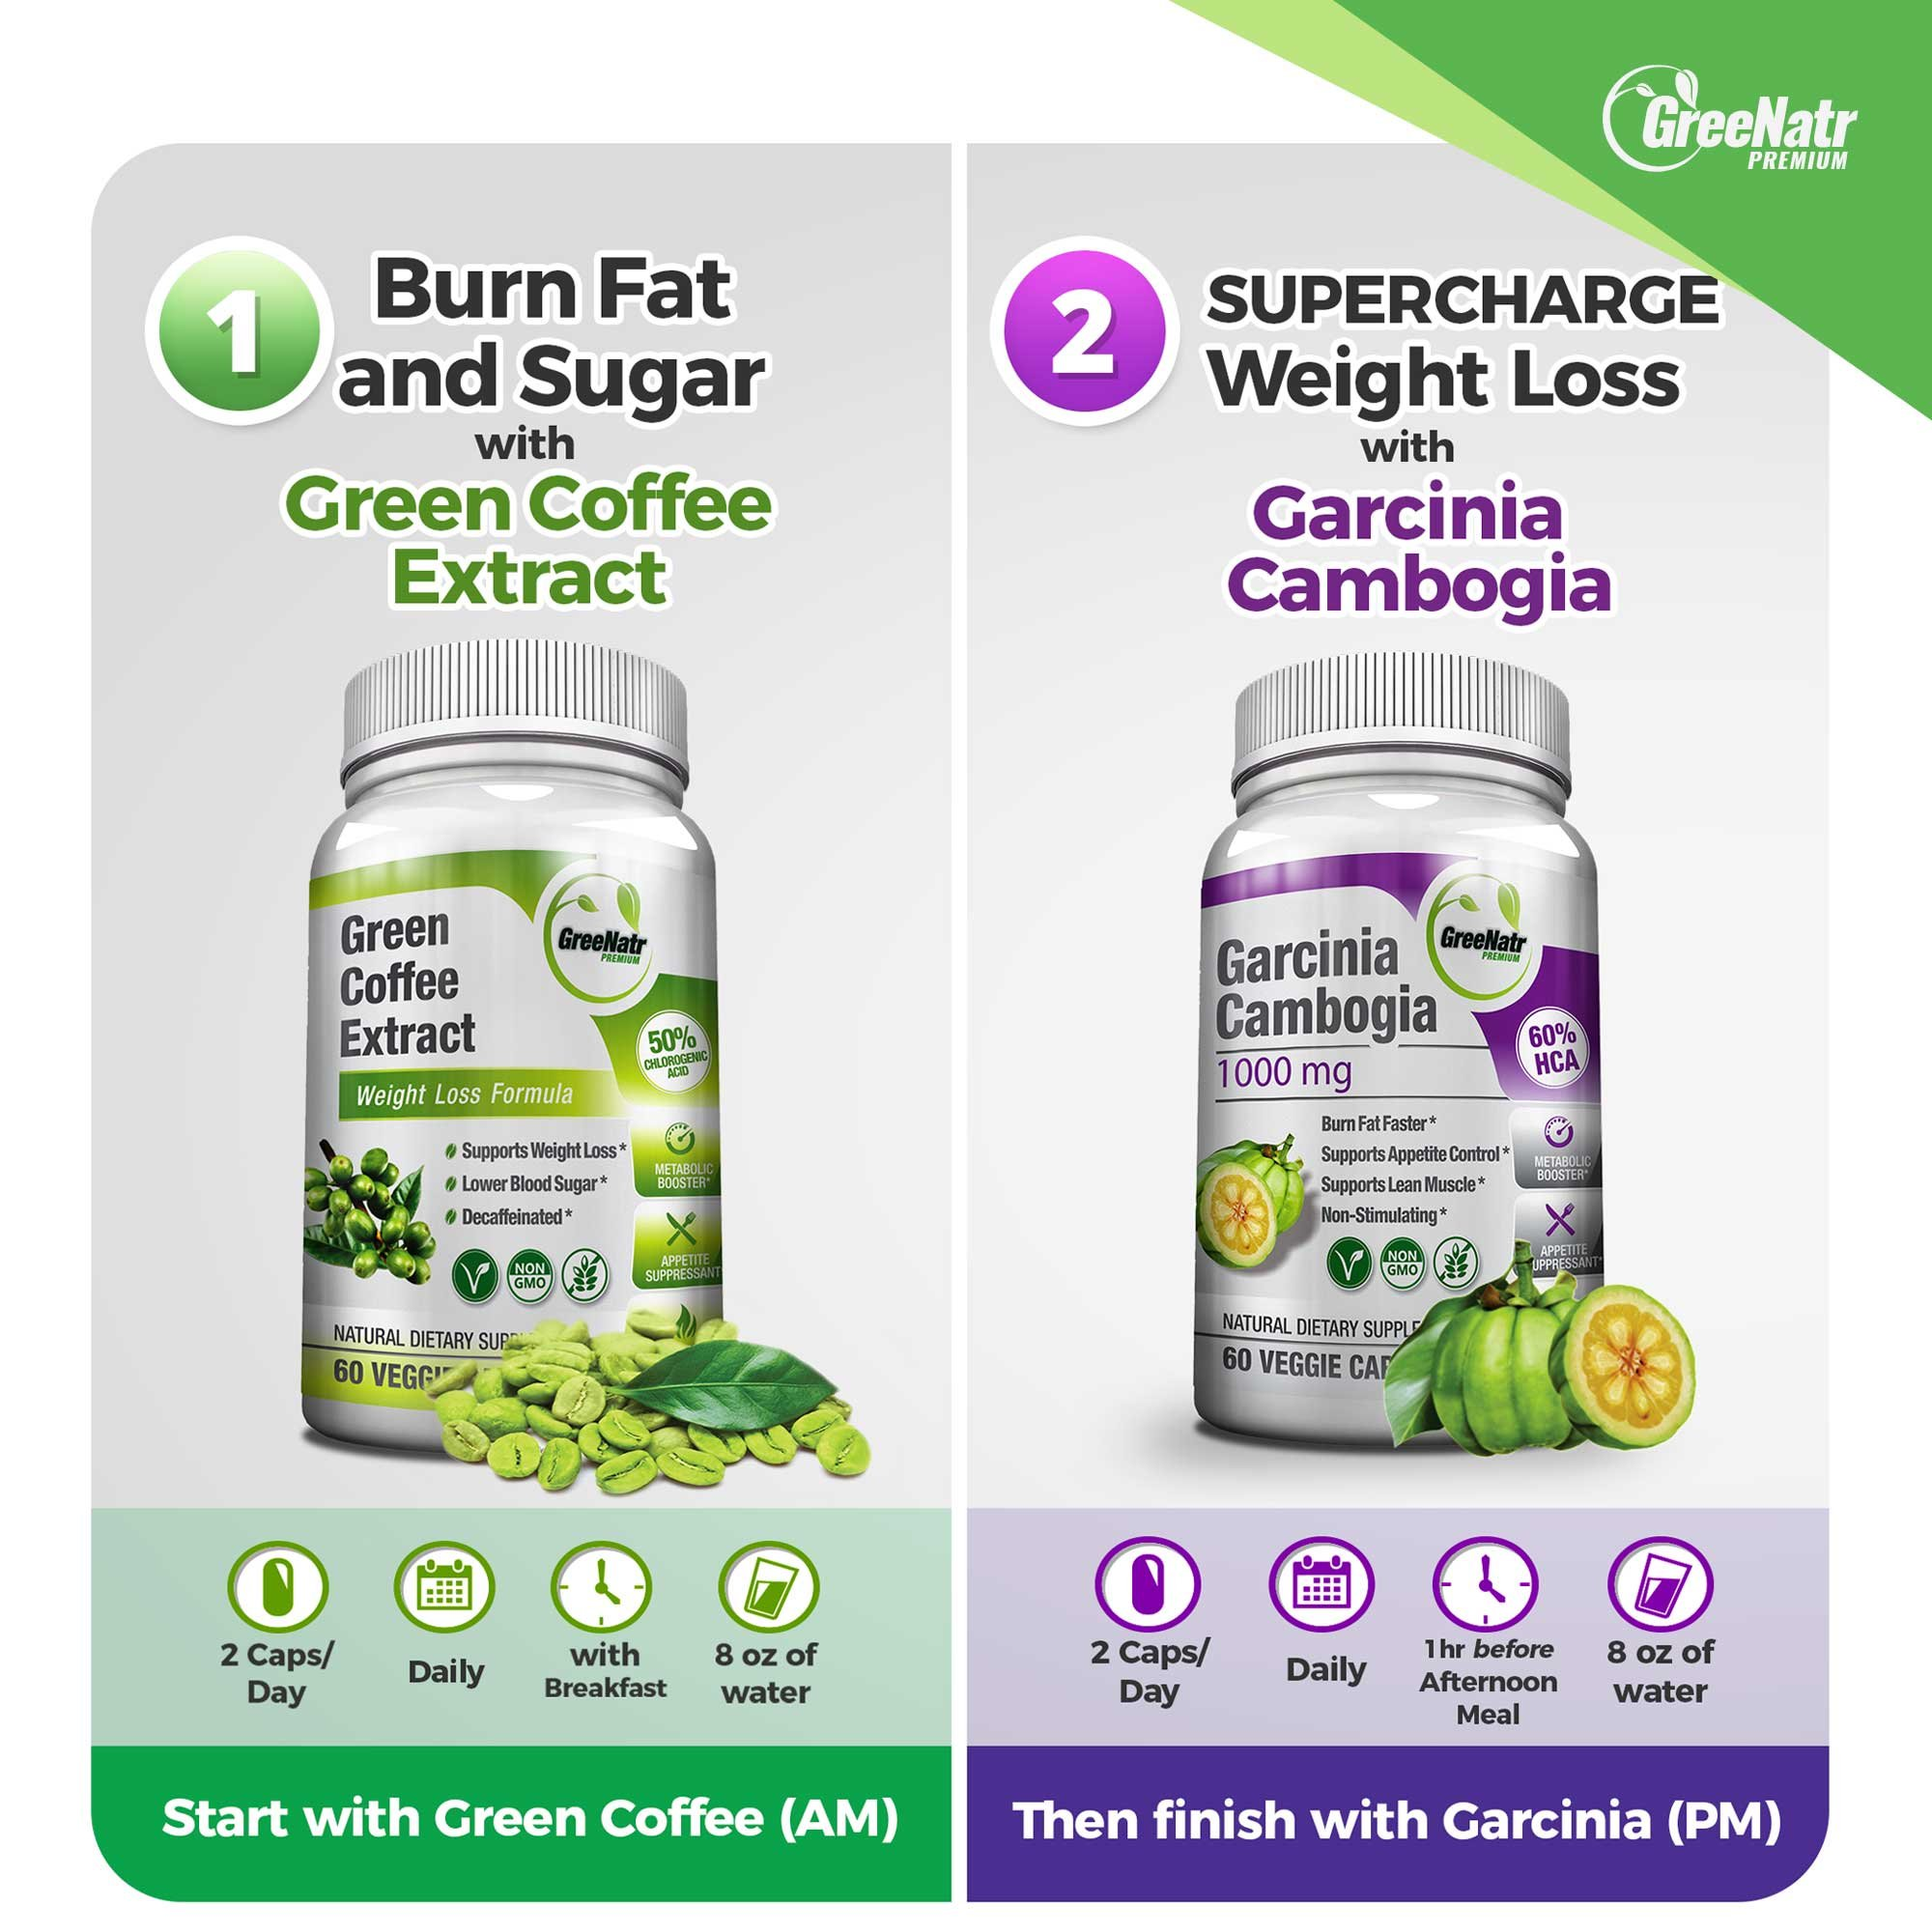 All-in-One Weight Diet Loss Pills & Appetite Suppressant Bundle w/Pure Green Coffee Bean Extract + Garcinia Cambogia Extract | Blocks Fat, Sugar, Carbs - 240 Veggie Capsules - Gluten Free & Non GMO by GreeNatr (Image #2)